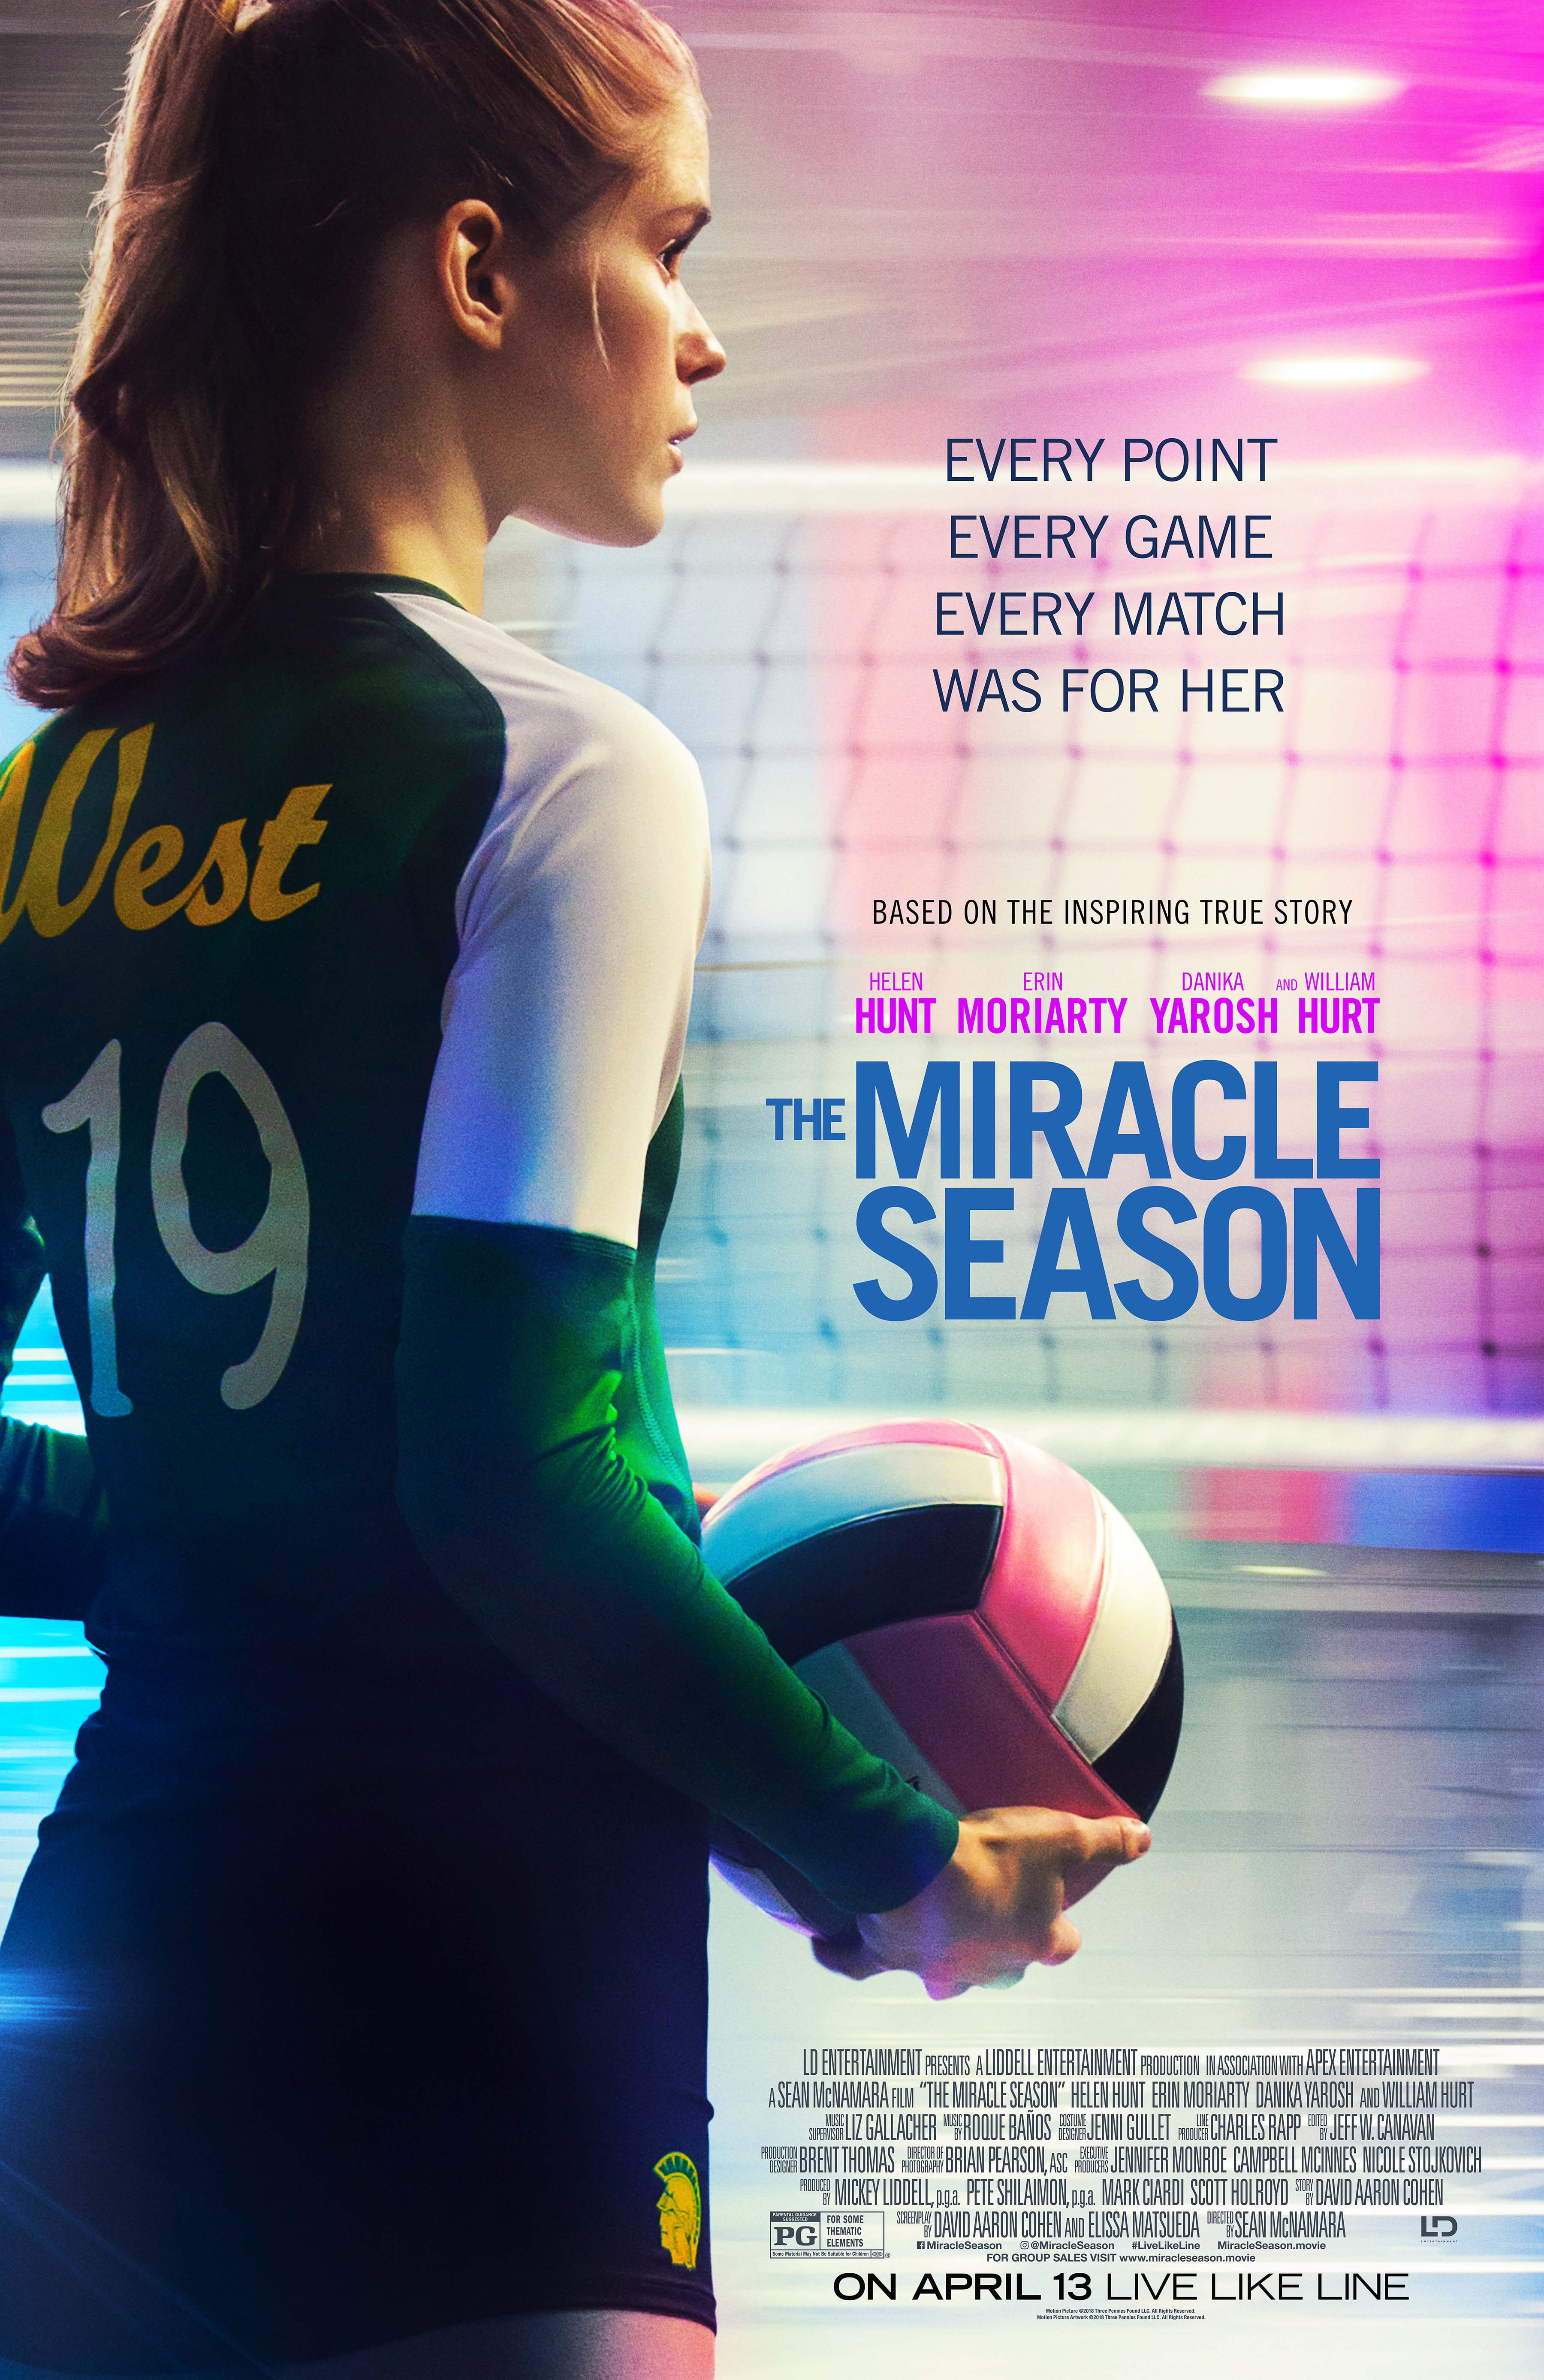 the-miracle-season-FIN01_MiracleSeason_1Sht_Payoff_VF[2]_rgb (1)